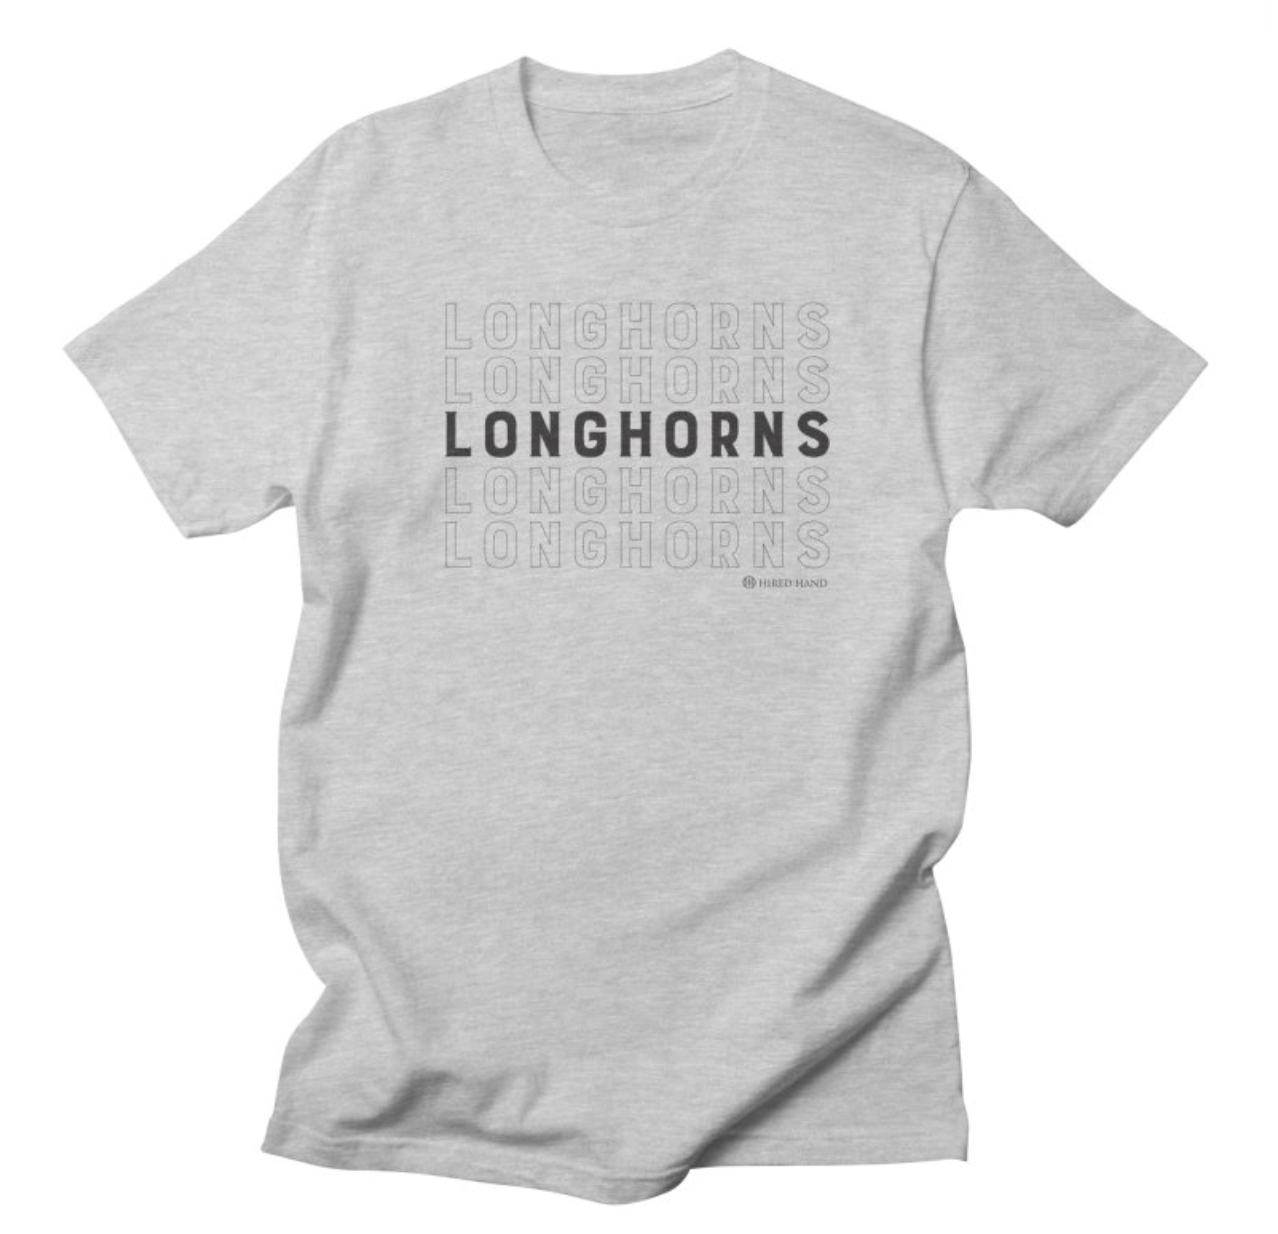 Longhorns t-shirt